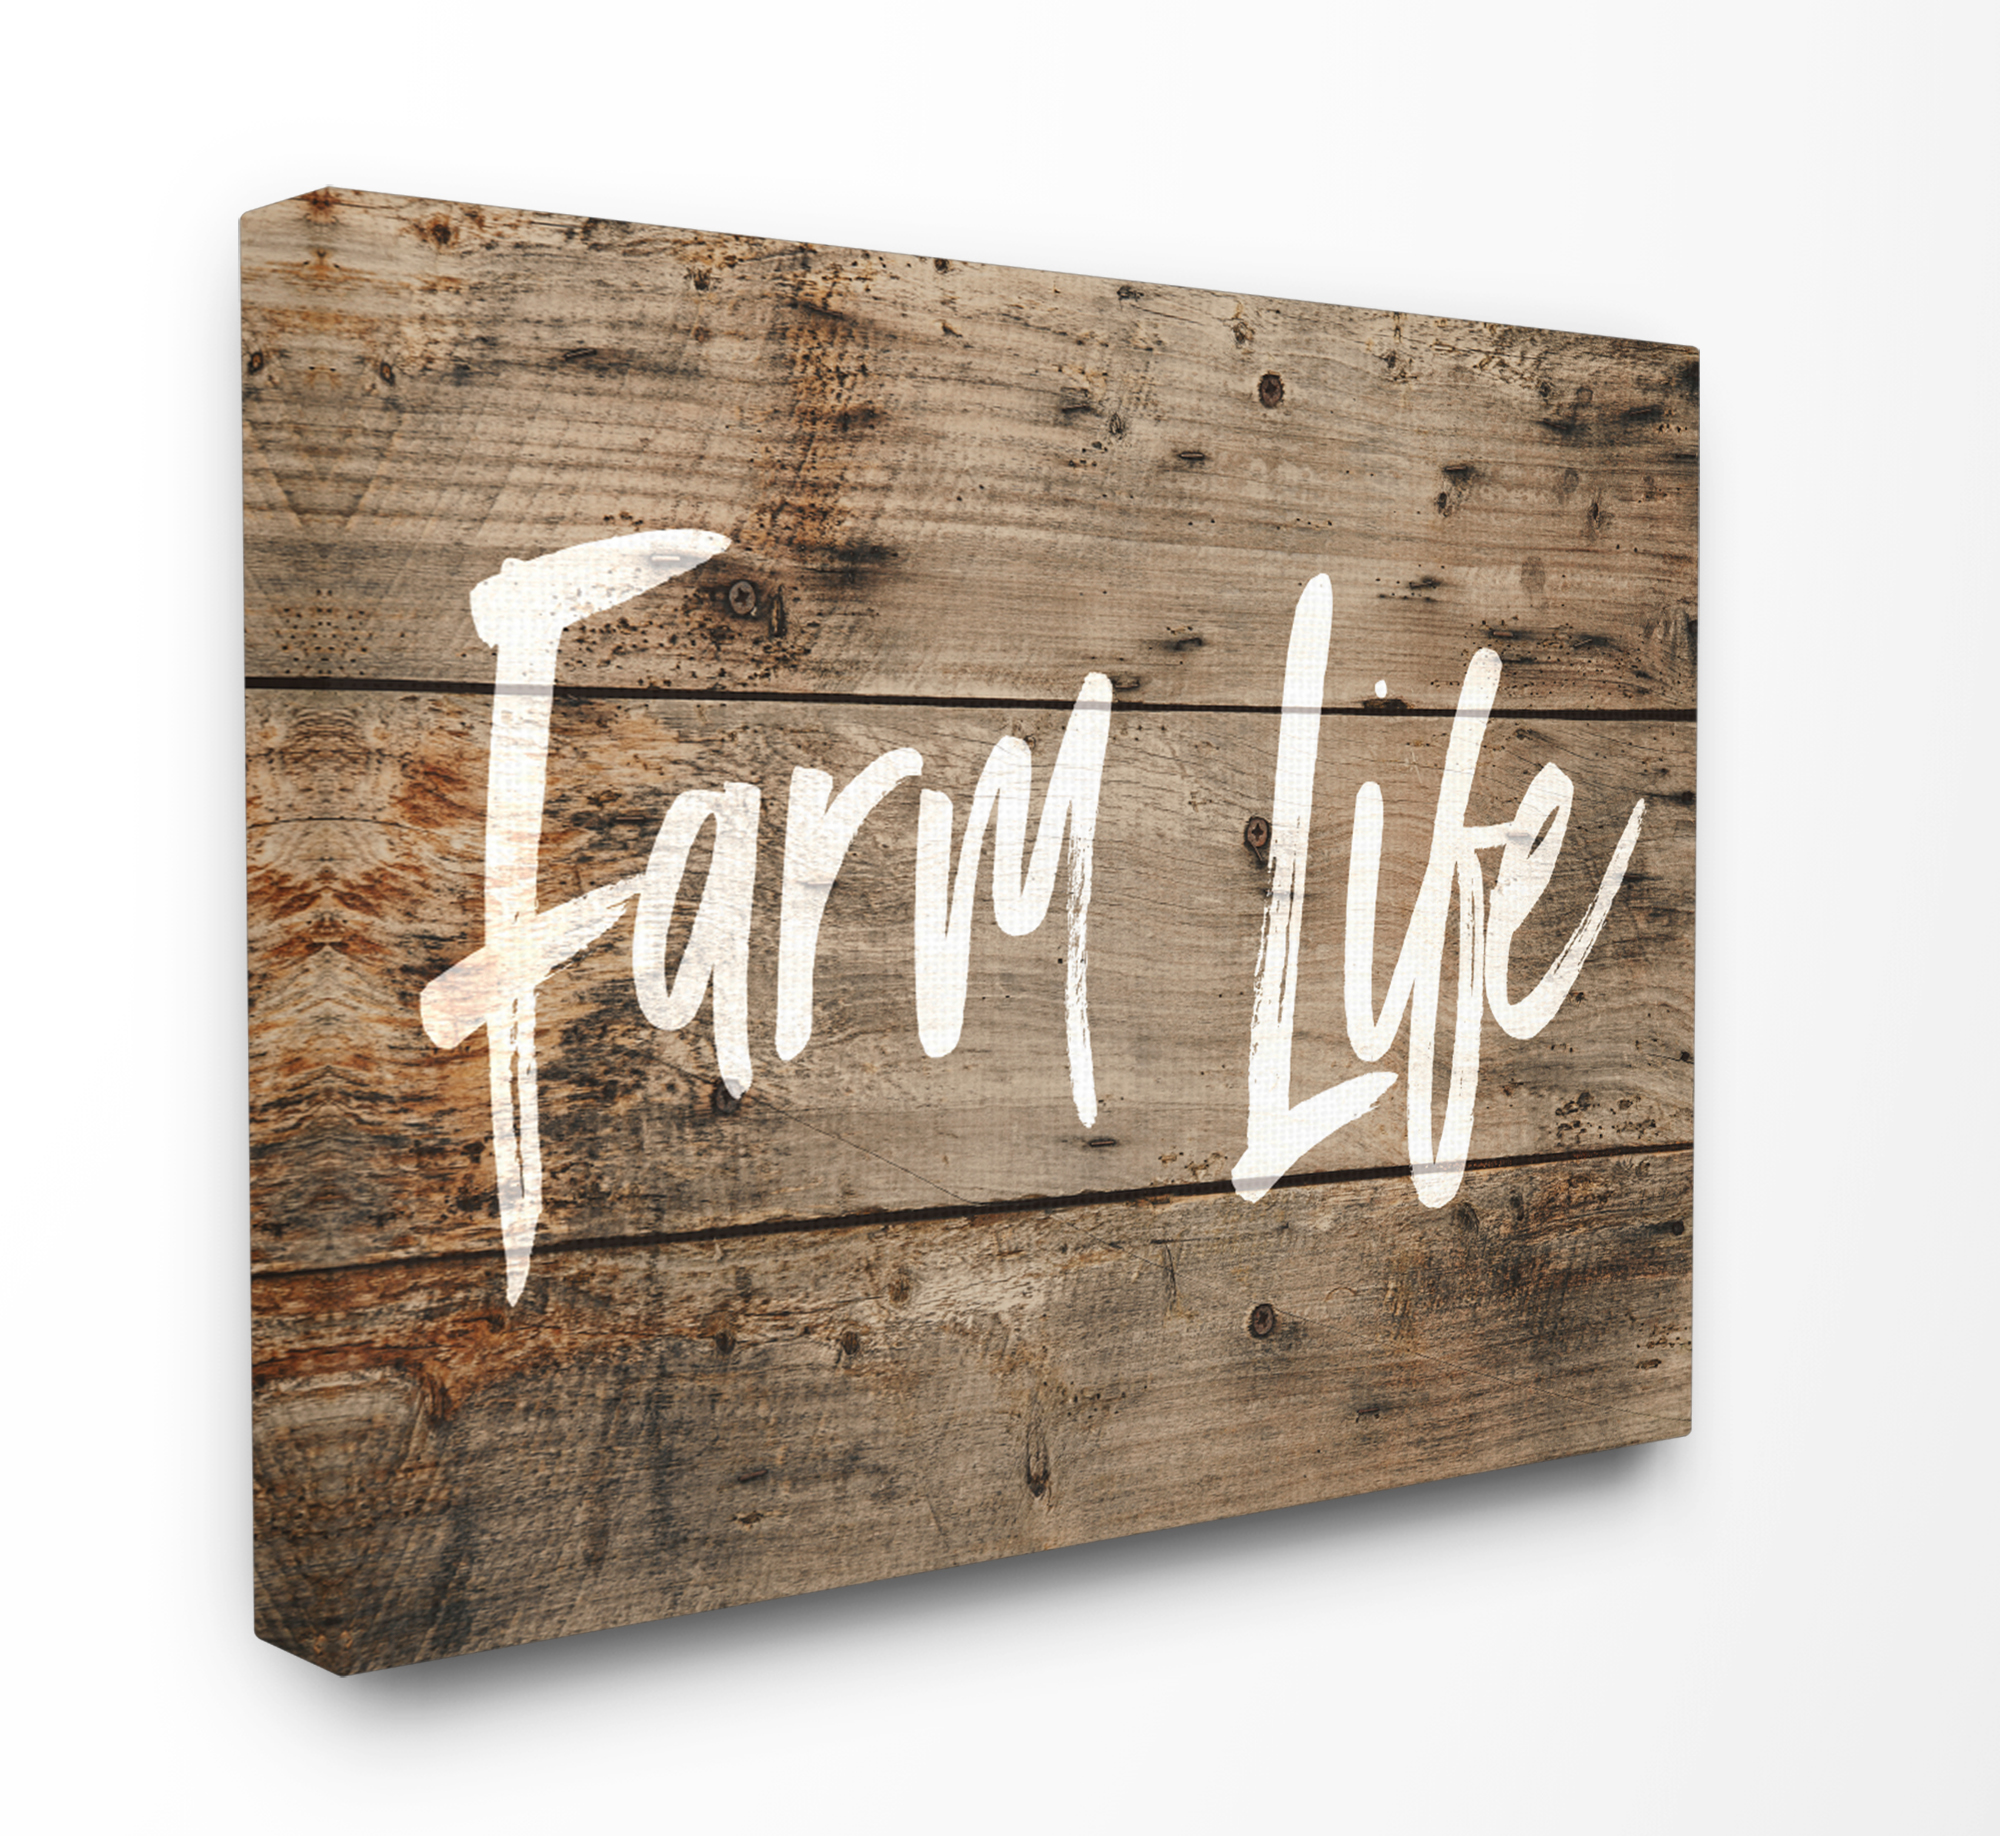 The Stupell Home Decor Collection Farm Life Distressed Plank Wood Look XXL Stretched Canvas Wall Art